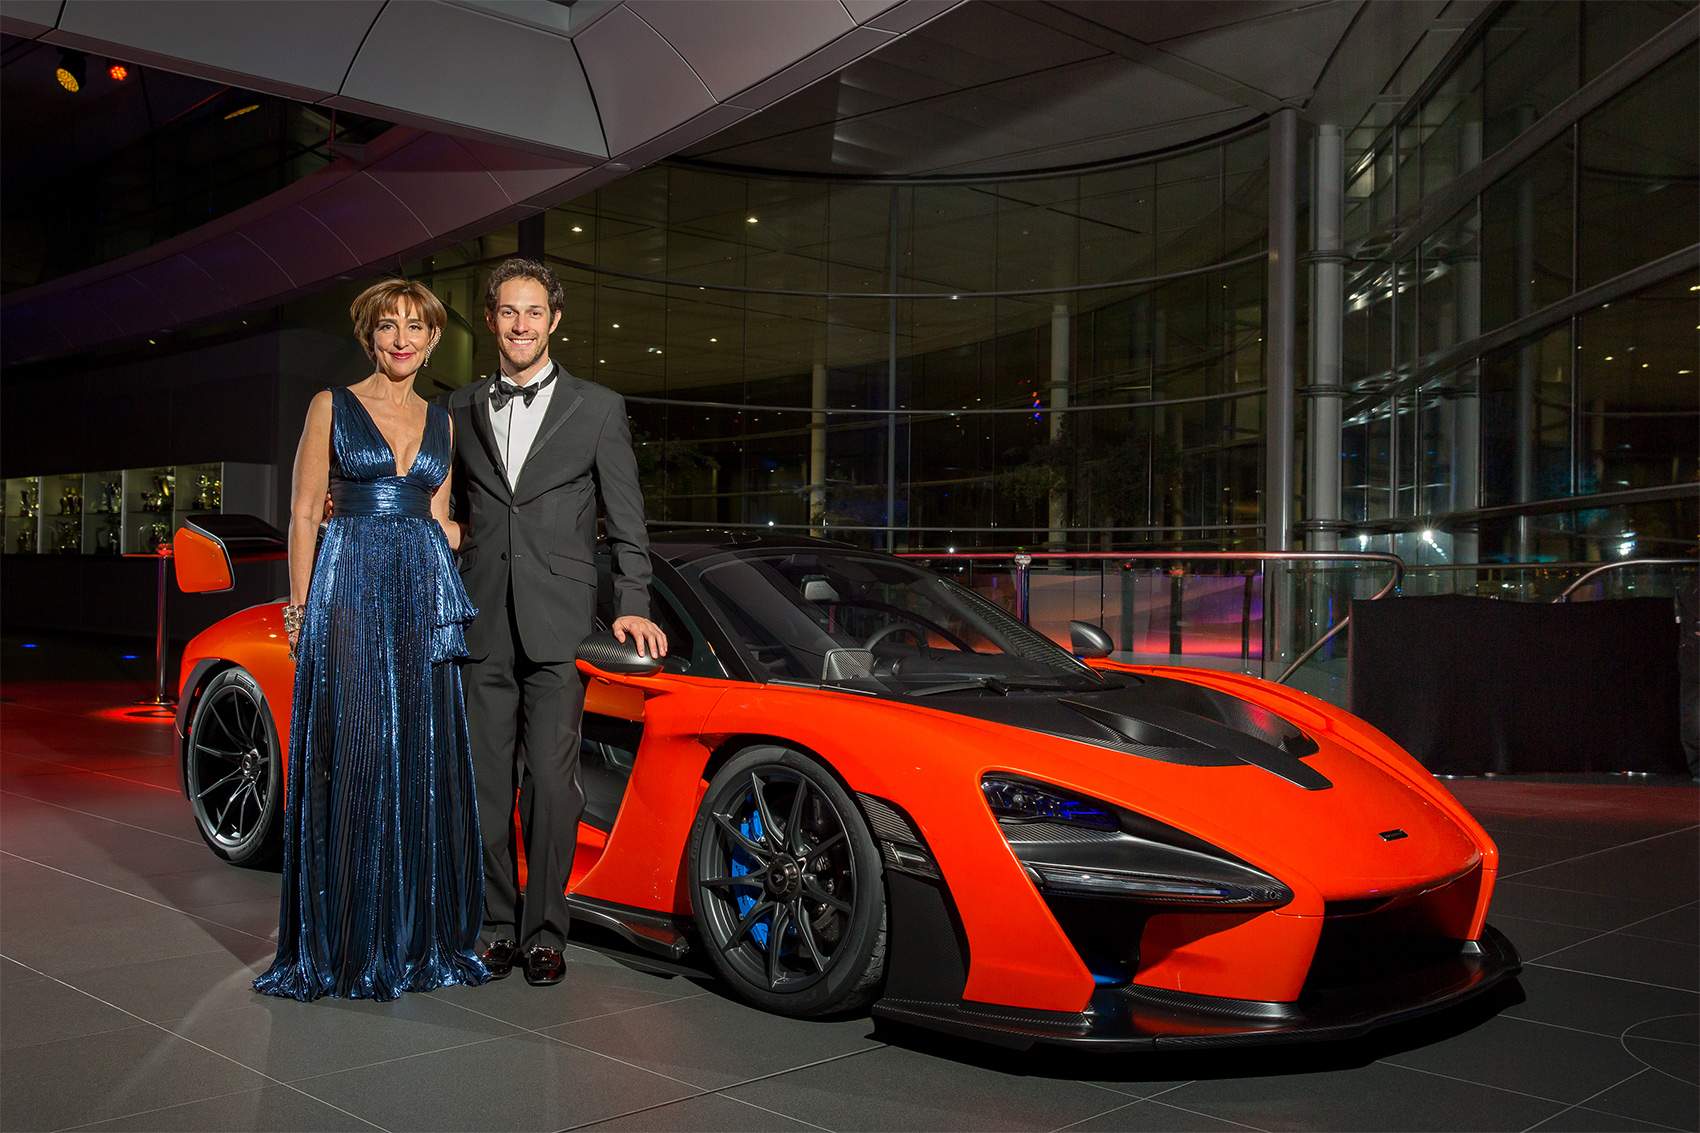 TrackWorthy - Viviane Senna da Silva Lalli and Bruno Senna with McLaren Senna